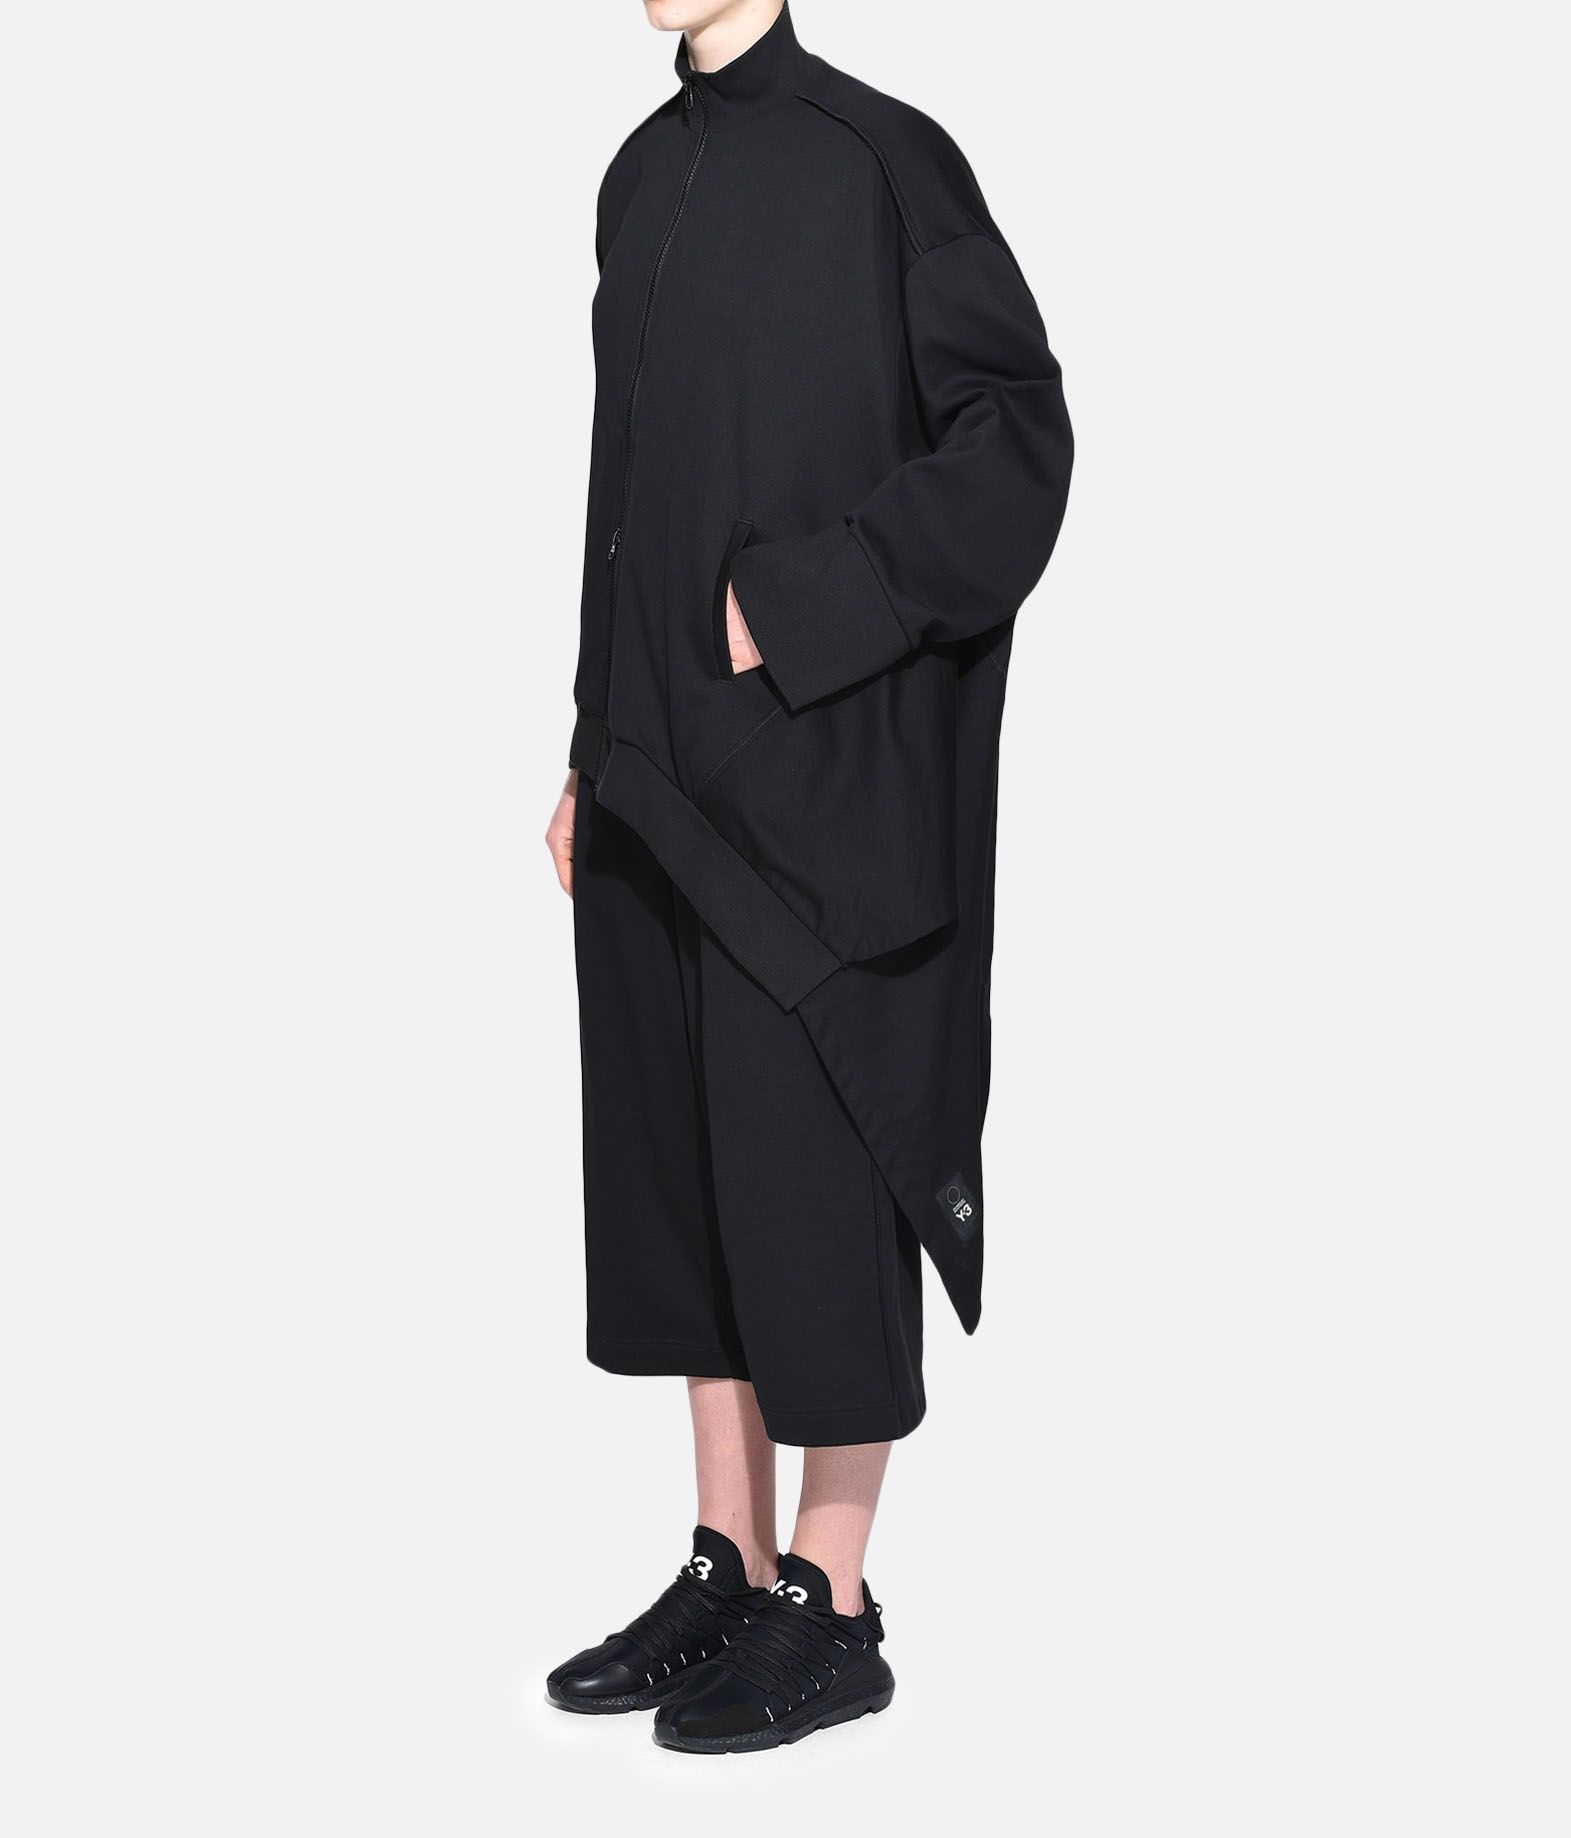 Y-3 Y-3 Tailed Track Jacket Blazer Woman e